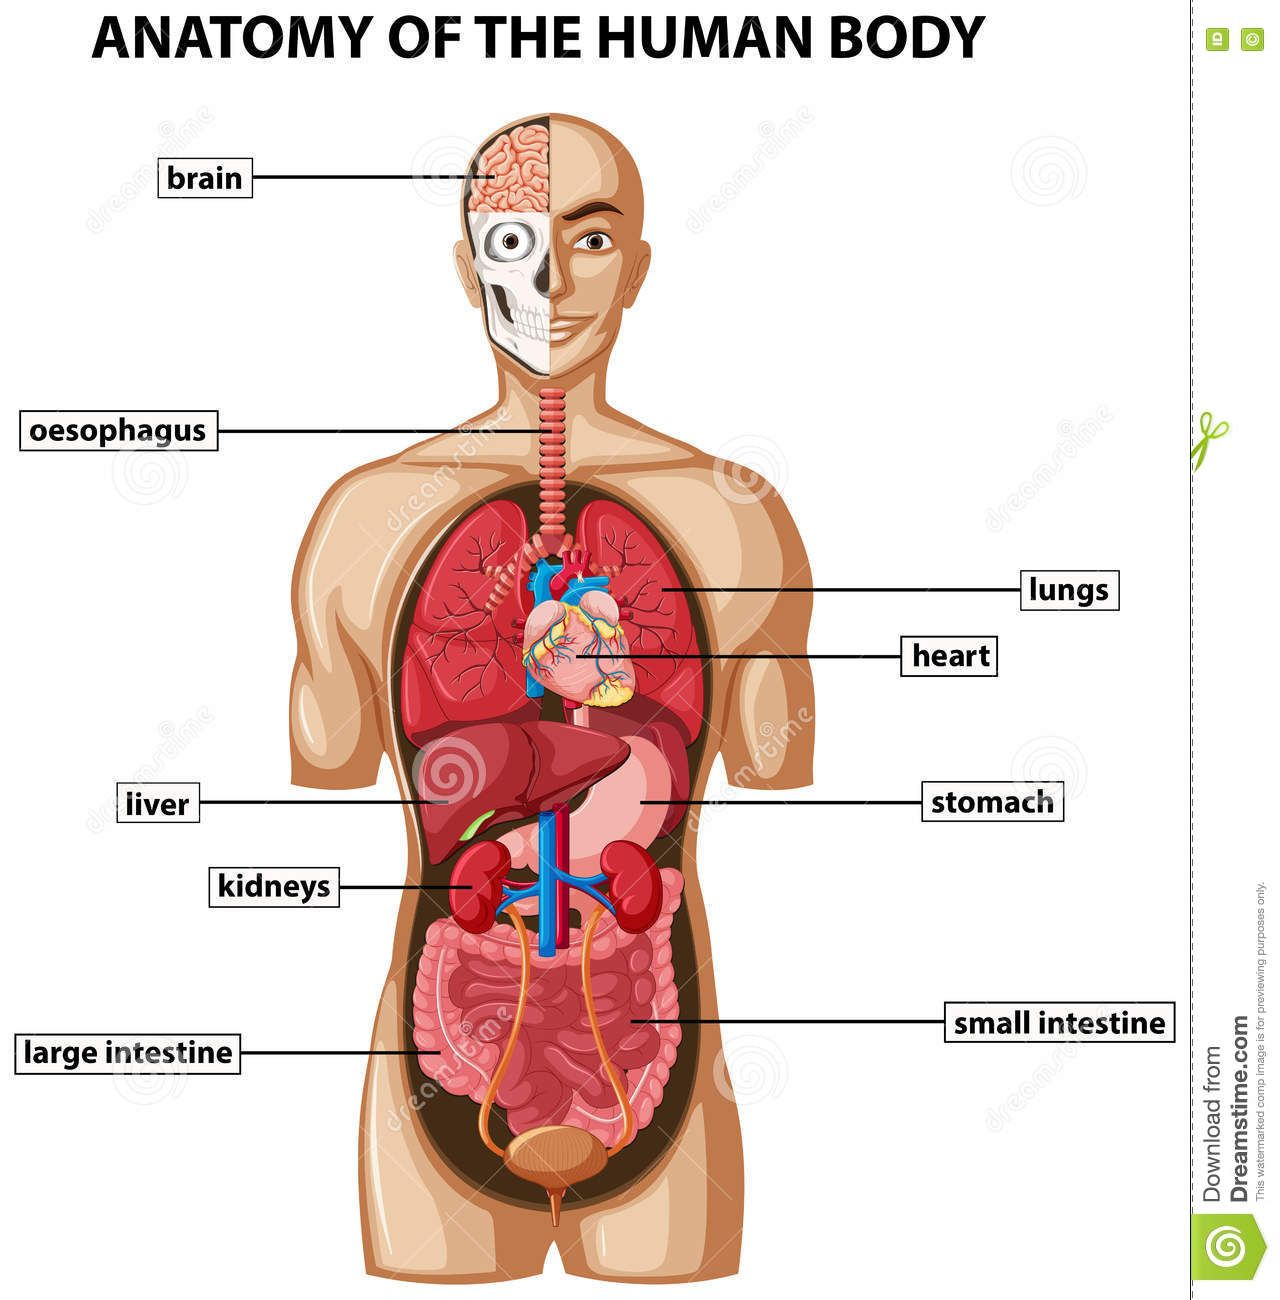 medium resolution of image internal organs human body image internal organs human body photos diagram of the organs